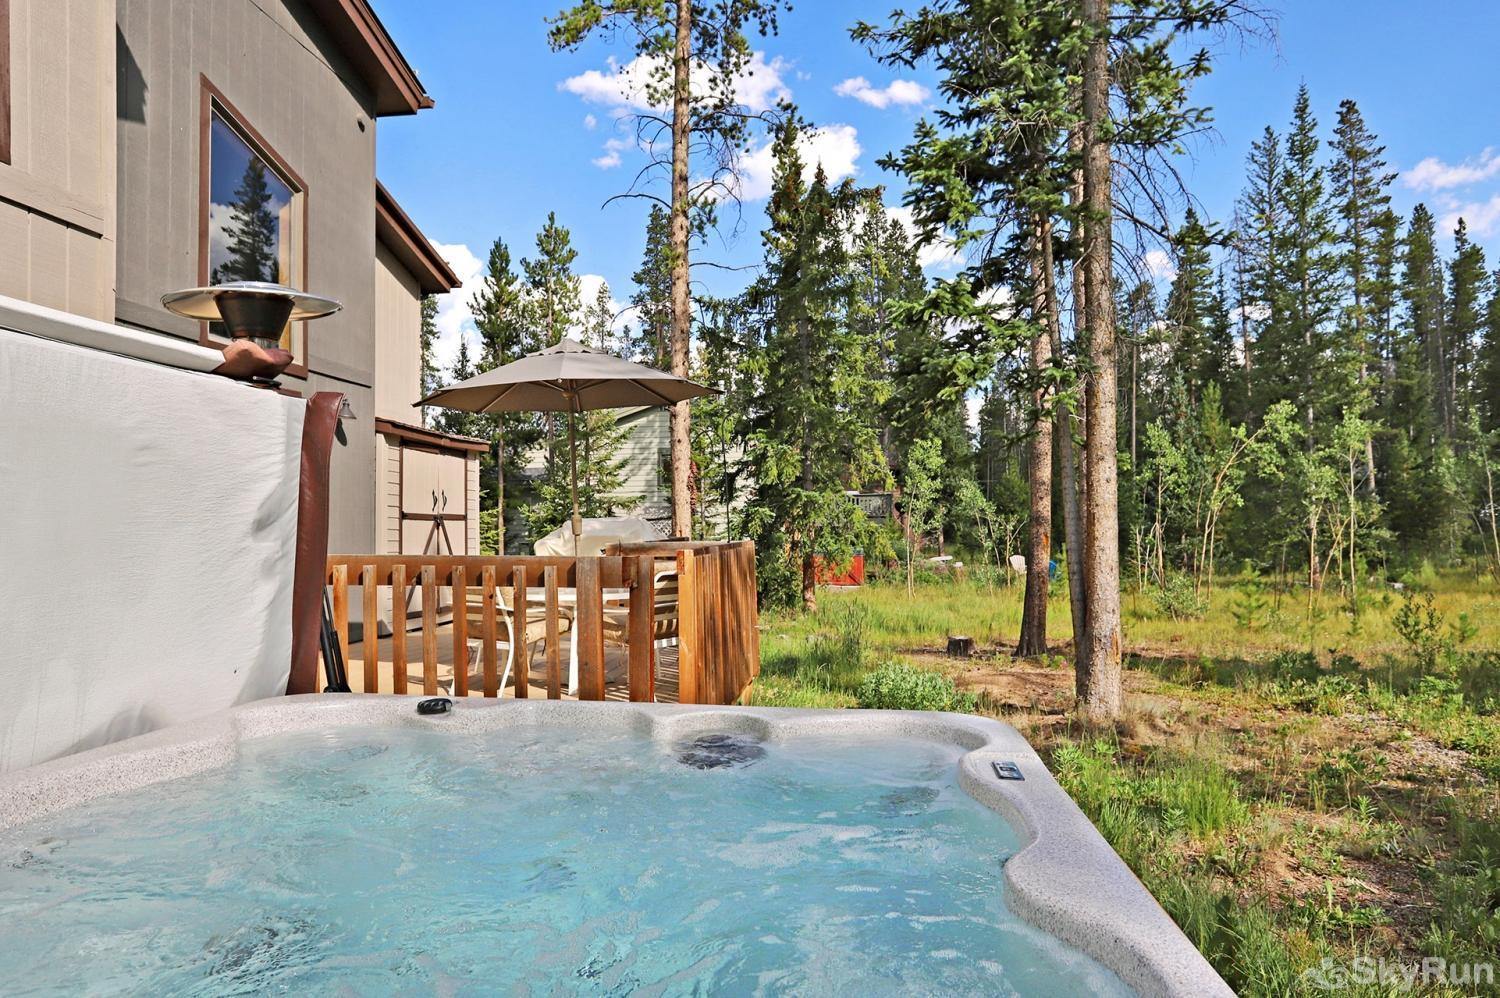 Peak Seven Cottage Relax and unwind in your private outdoor hot tub